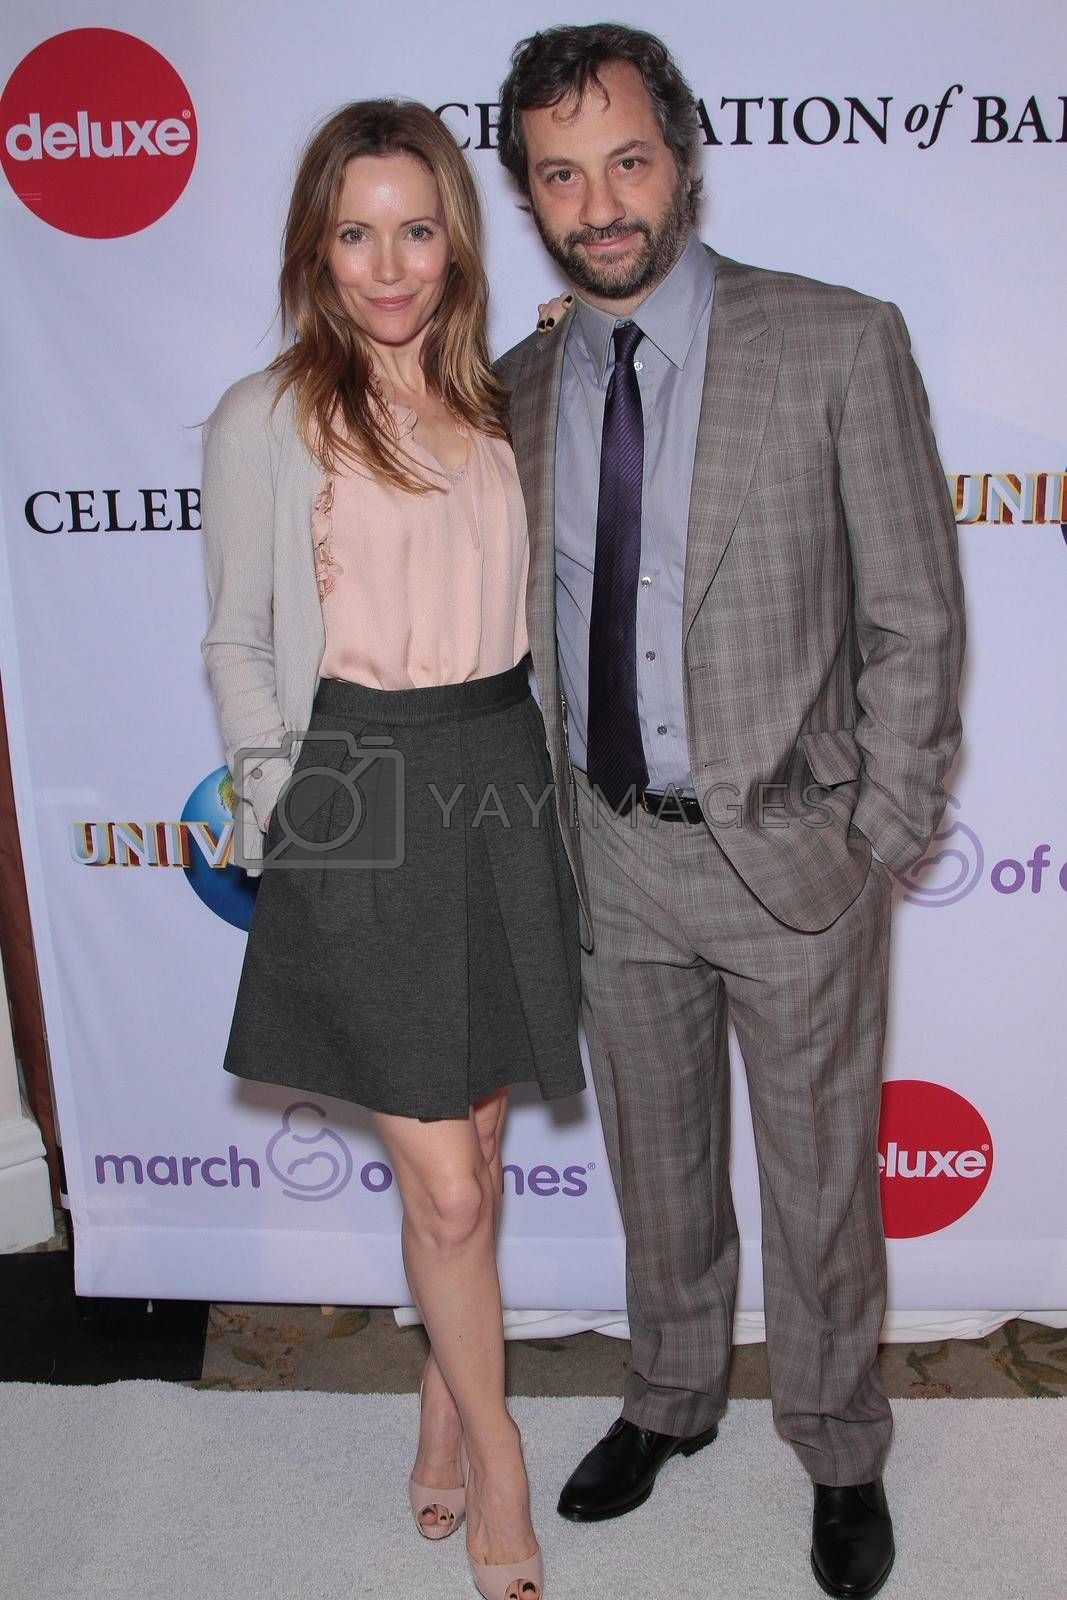 Leslie Mann, Judd Apatow at the March Of Dimes' 6th Annual Celebration Of Babies Luncheon, Beverly Hills Hotel, Beverly Hills, CA 12-02-11